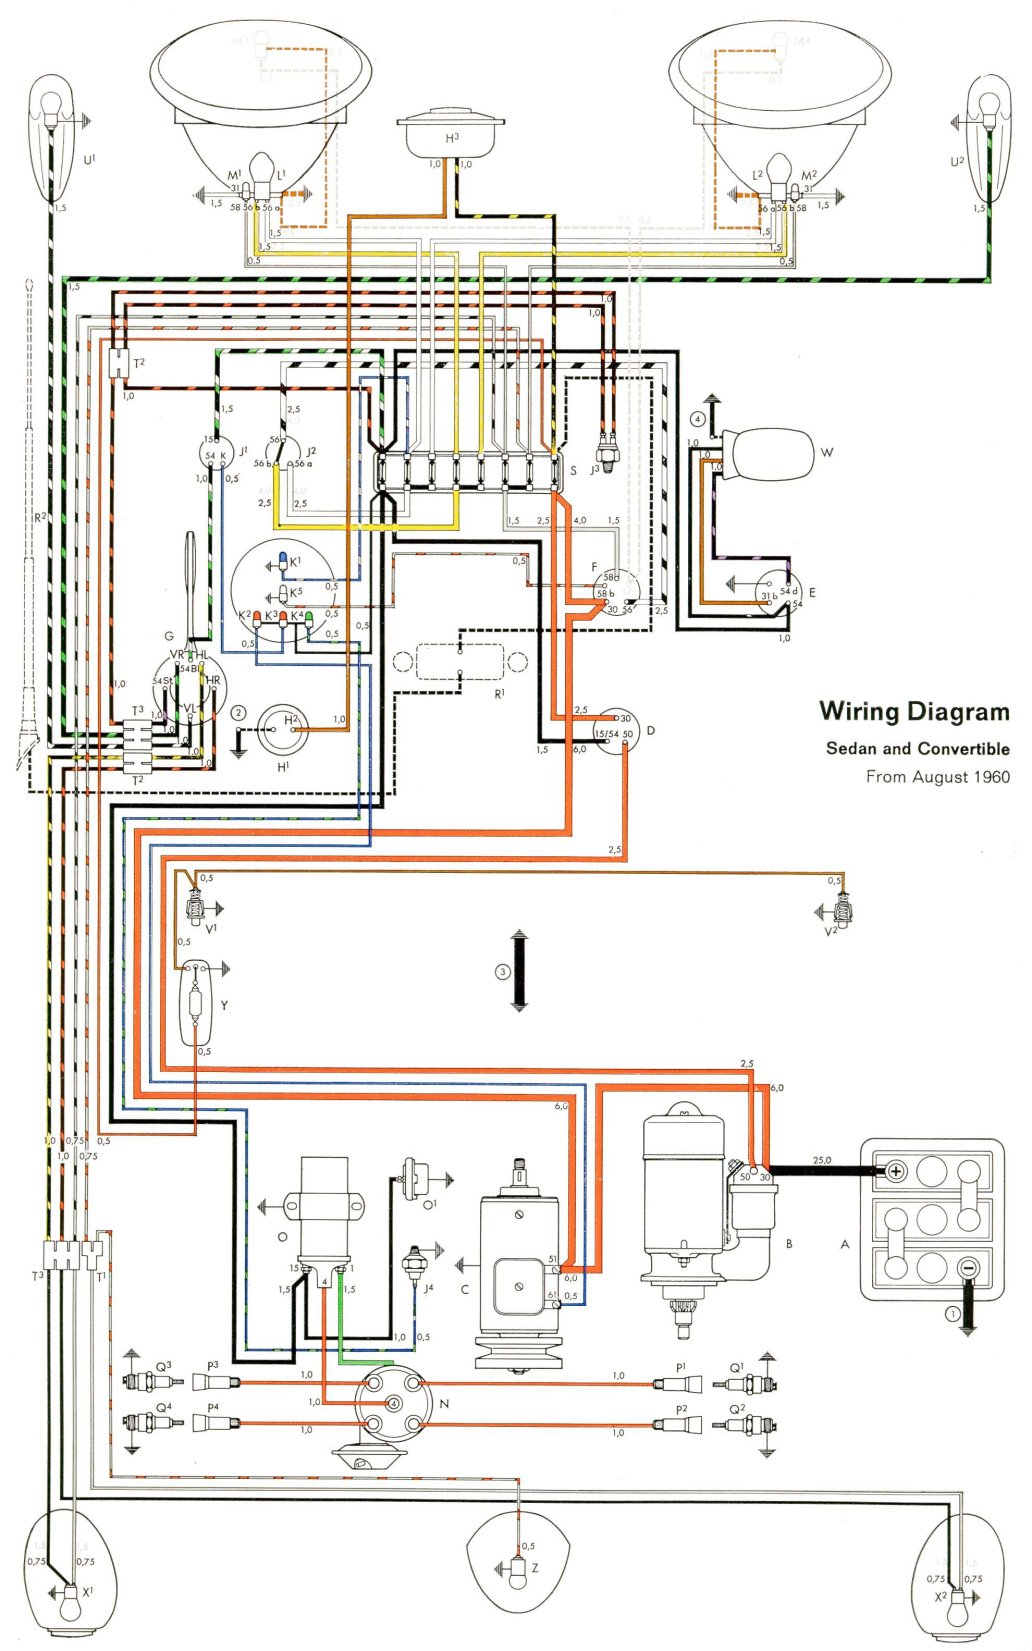 bug_61 1961 beetle wiring diagram thegoldenbug com vw bug wiring diagram at soozxer.org